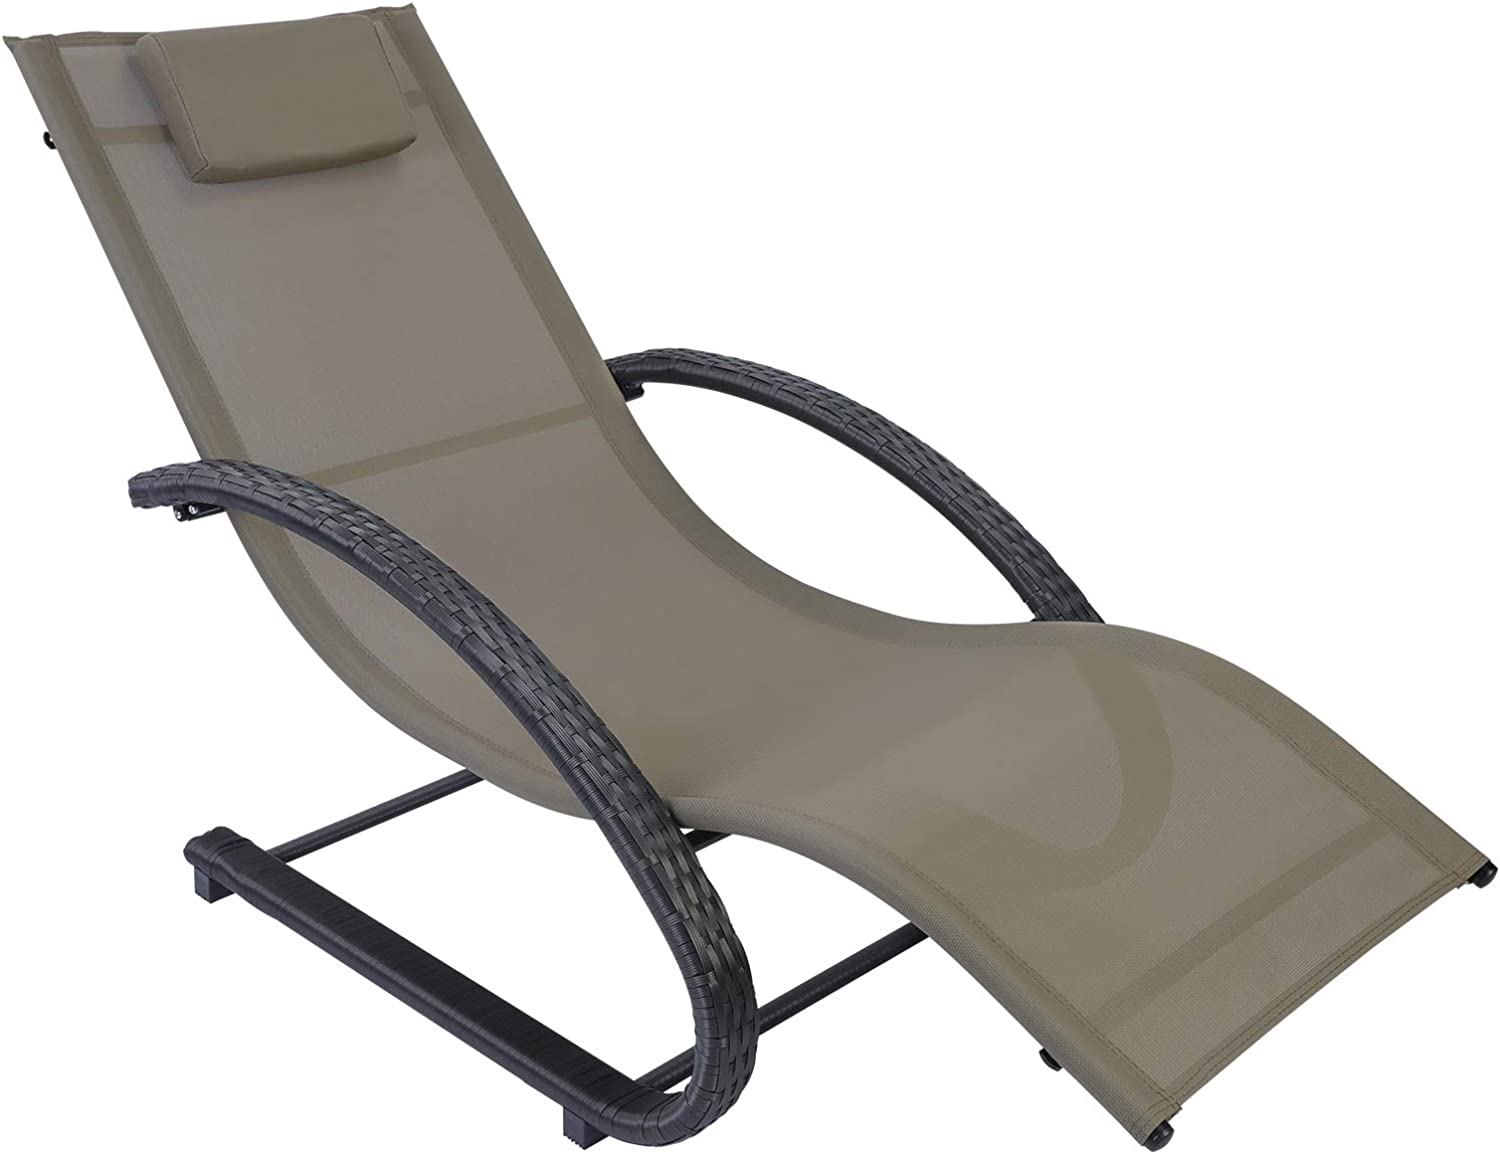 AGESISI Outdoor Patio Lounge Chair Reclining Chair Textilene Mesh Chaise with Hand-Woven Wicker Rattan Armrest and Pillow for Beach Yard Pool Garden Balcony, Tan